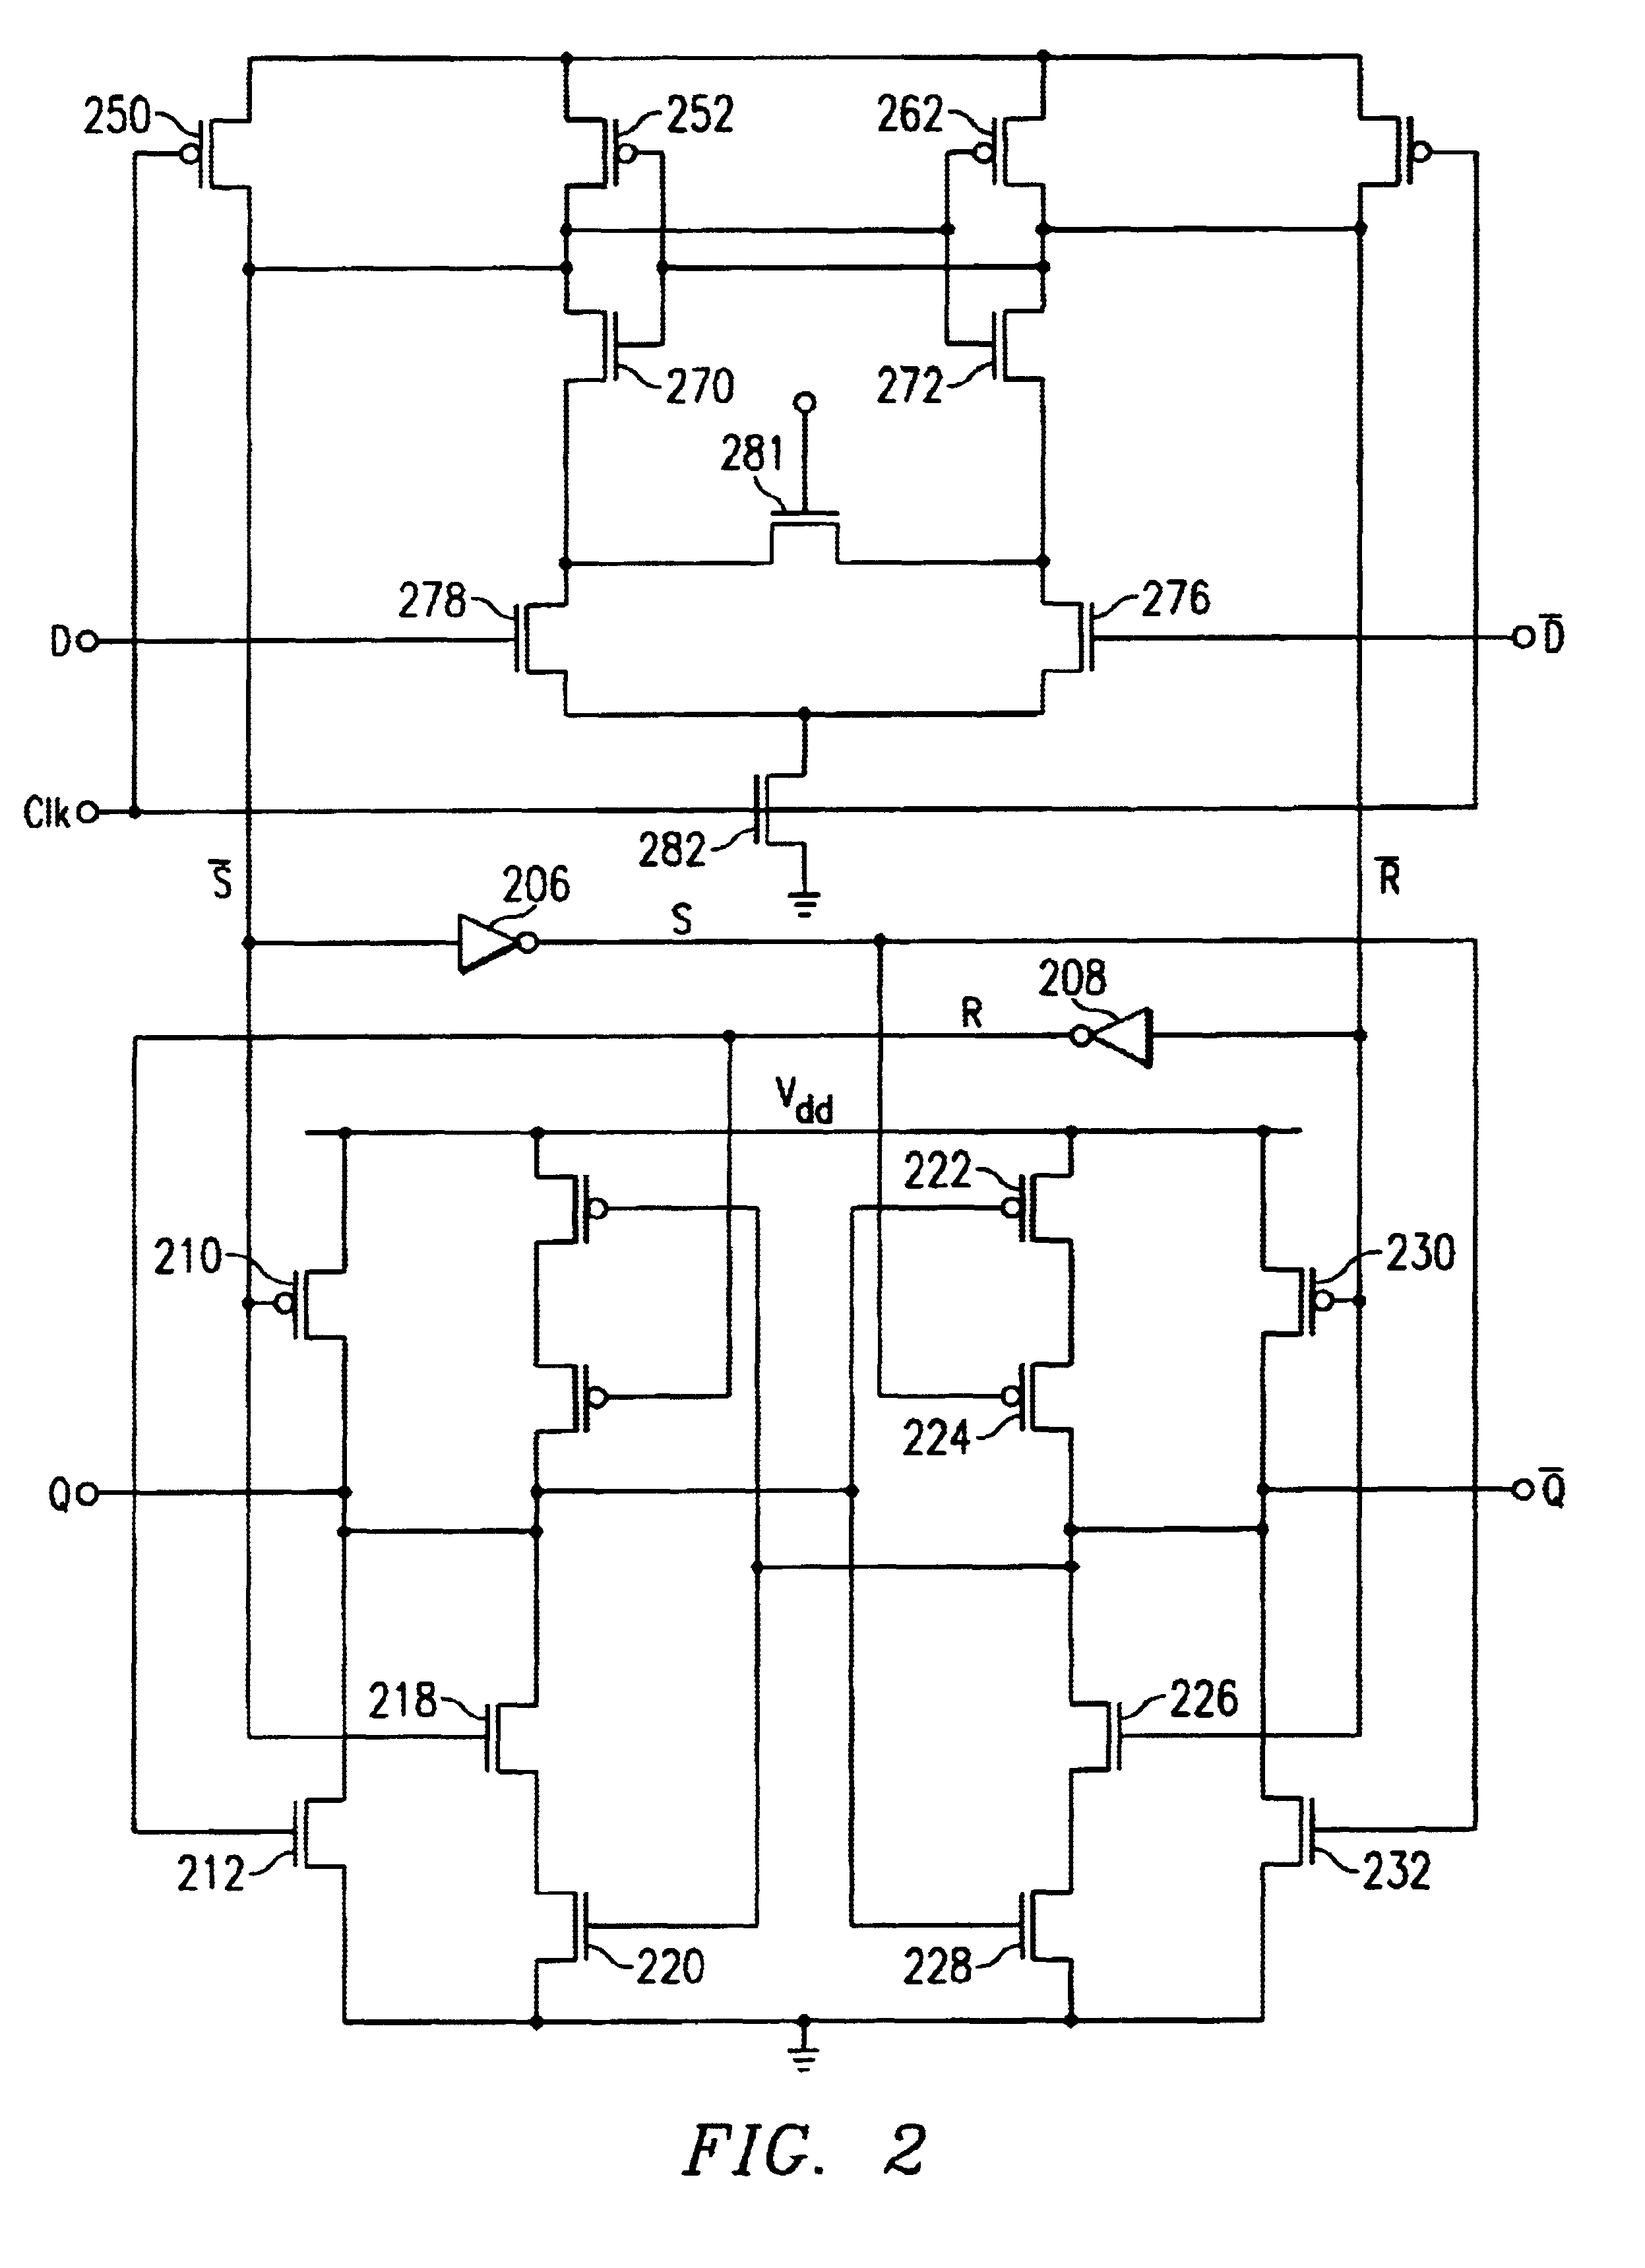 D Flip Flop Transistor Schematic Data Wiring Diagrams Latch Circuit Diagram Patent Us6633188 Sense Amplifier Based With Sheet